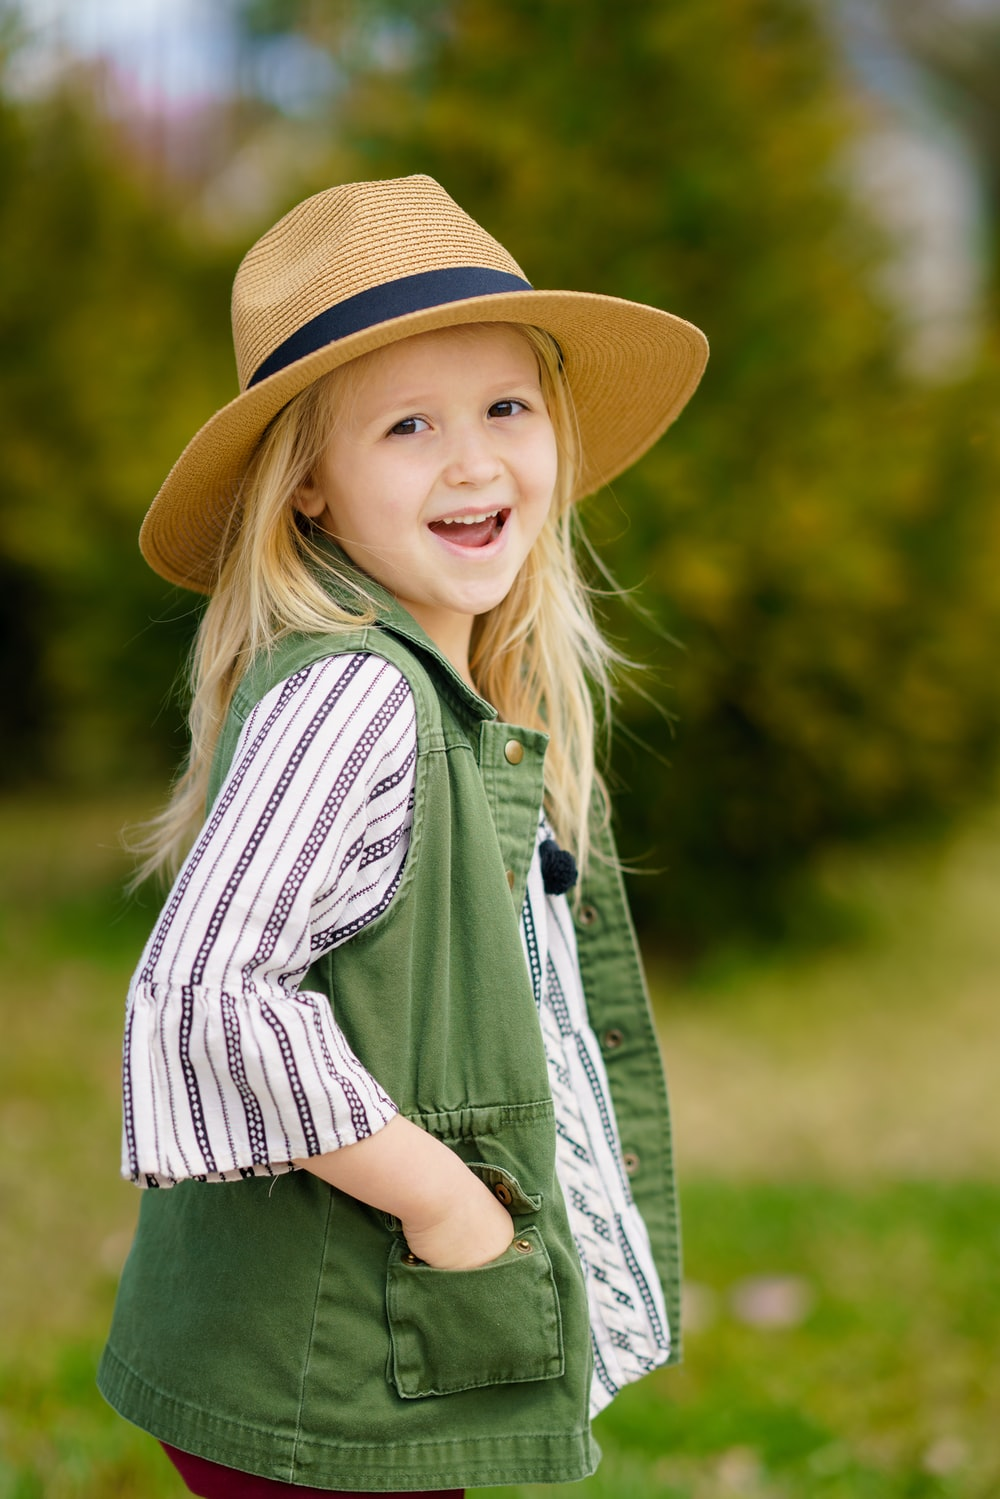 selective focus photography of girl smiling wearing sun hat